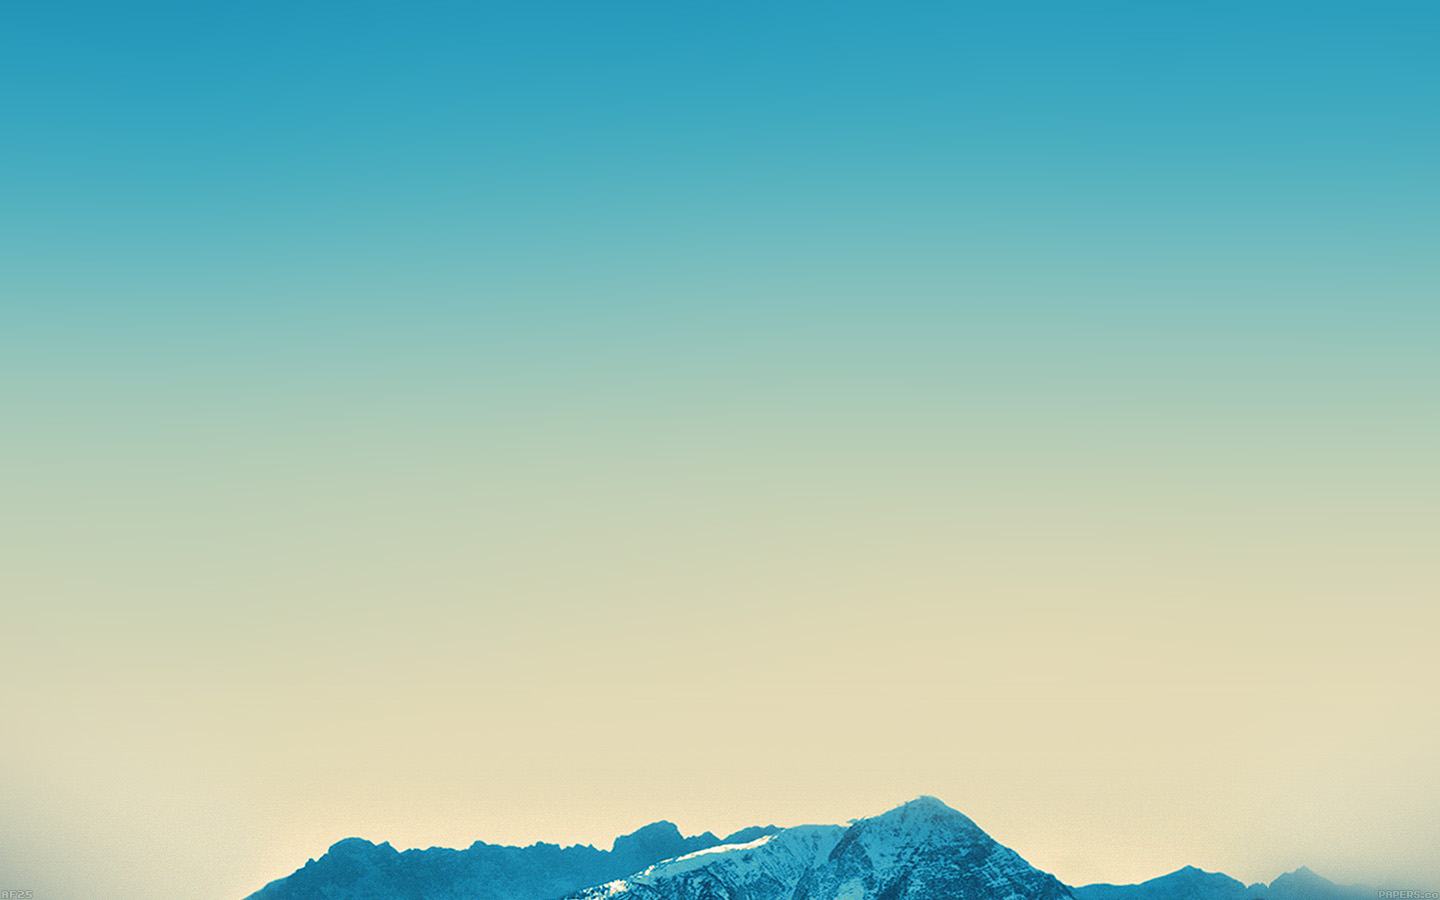 Car Wallpaper Hd Iphone 4 Af25 Ipad Air 2 Wallpaper Official Mountain Apple Art